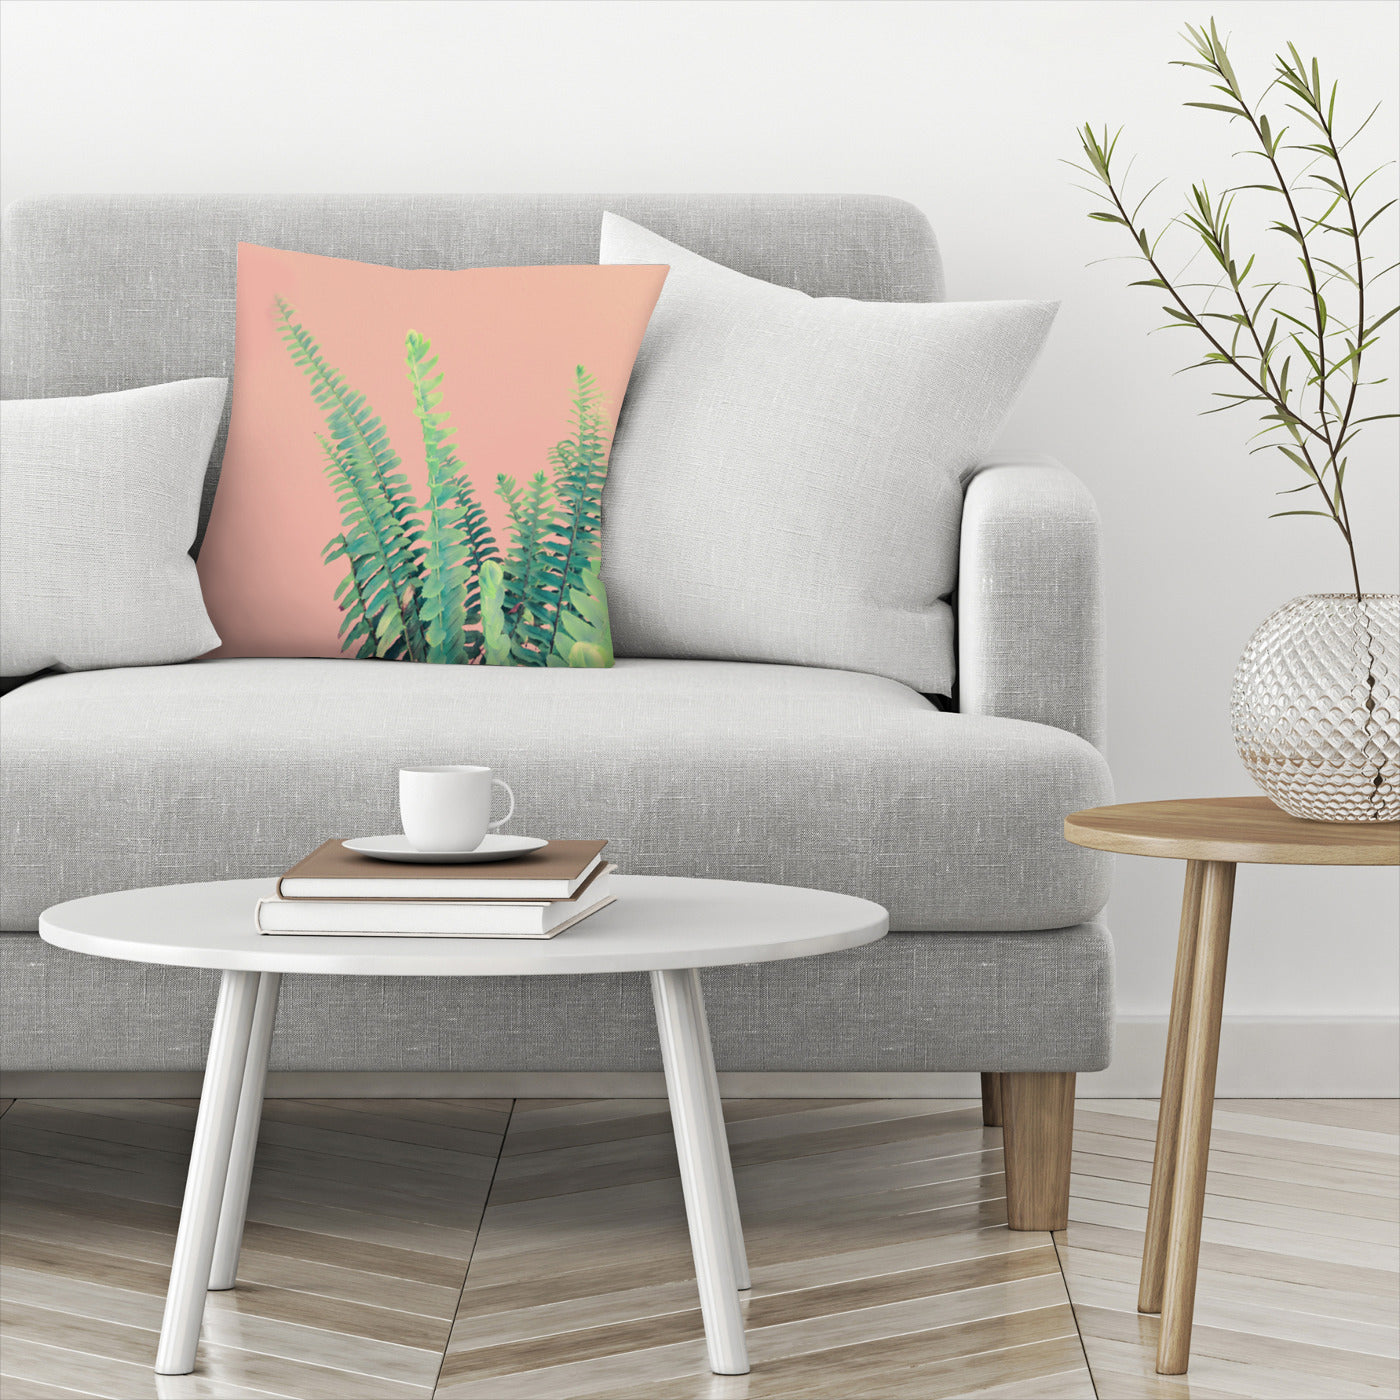 Ferns On Pink by Emanuela Carratoni Decorative Pillow - Decorative Pillow - Americanflat